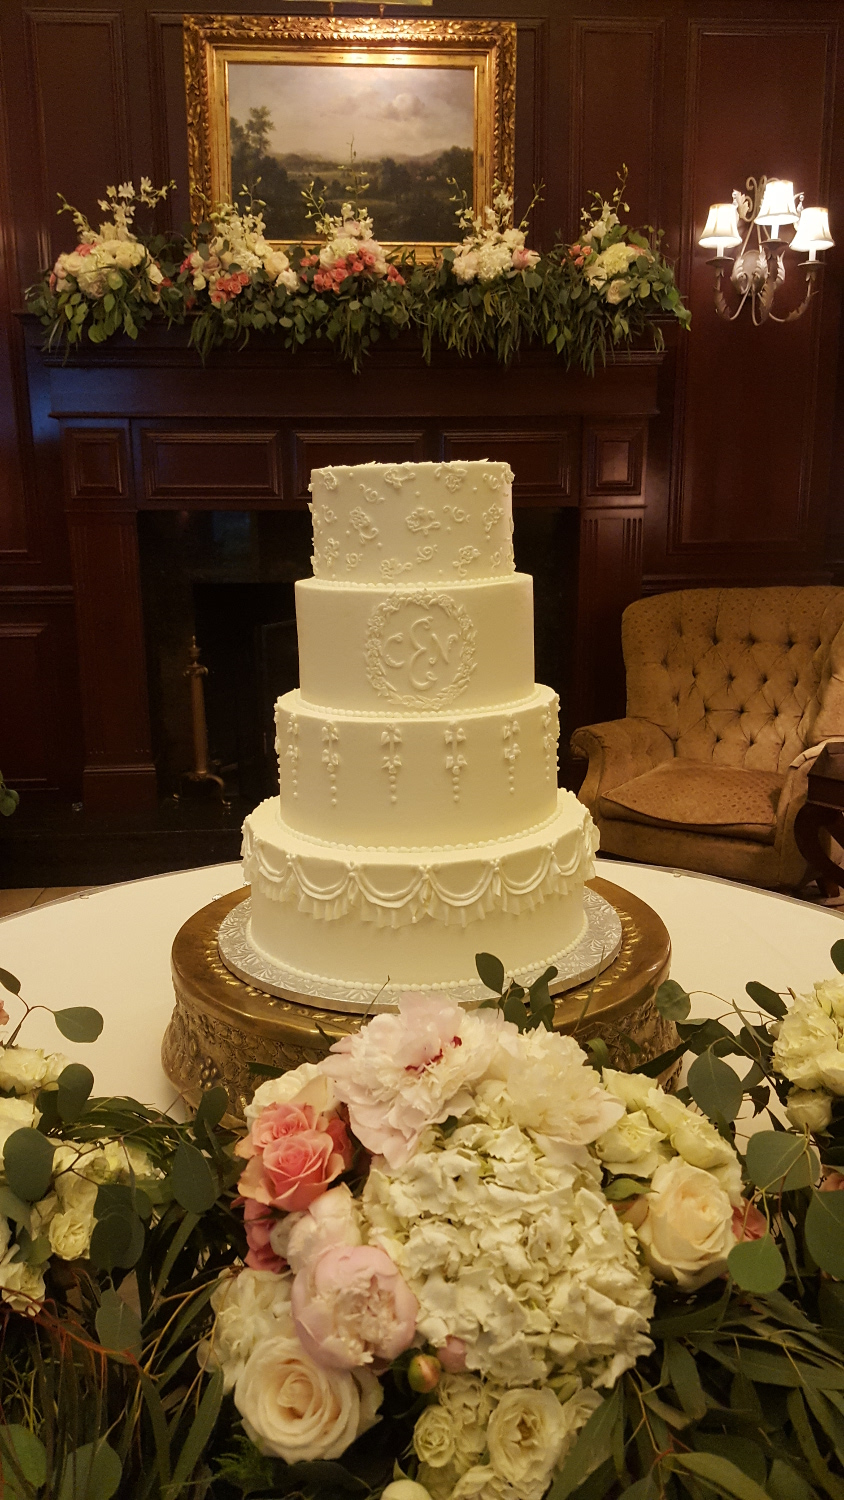 4 tier white wedding cake with intricate icing.